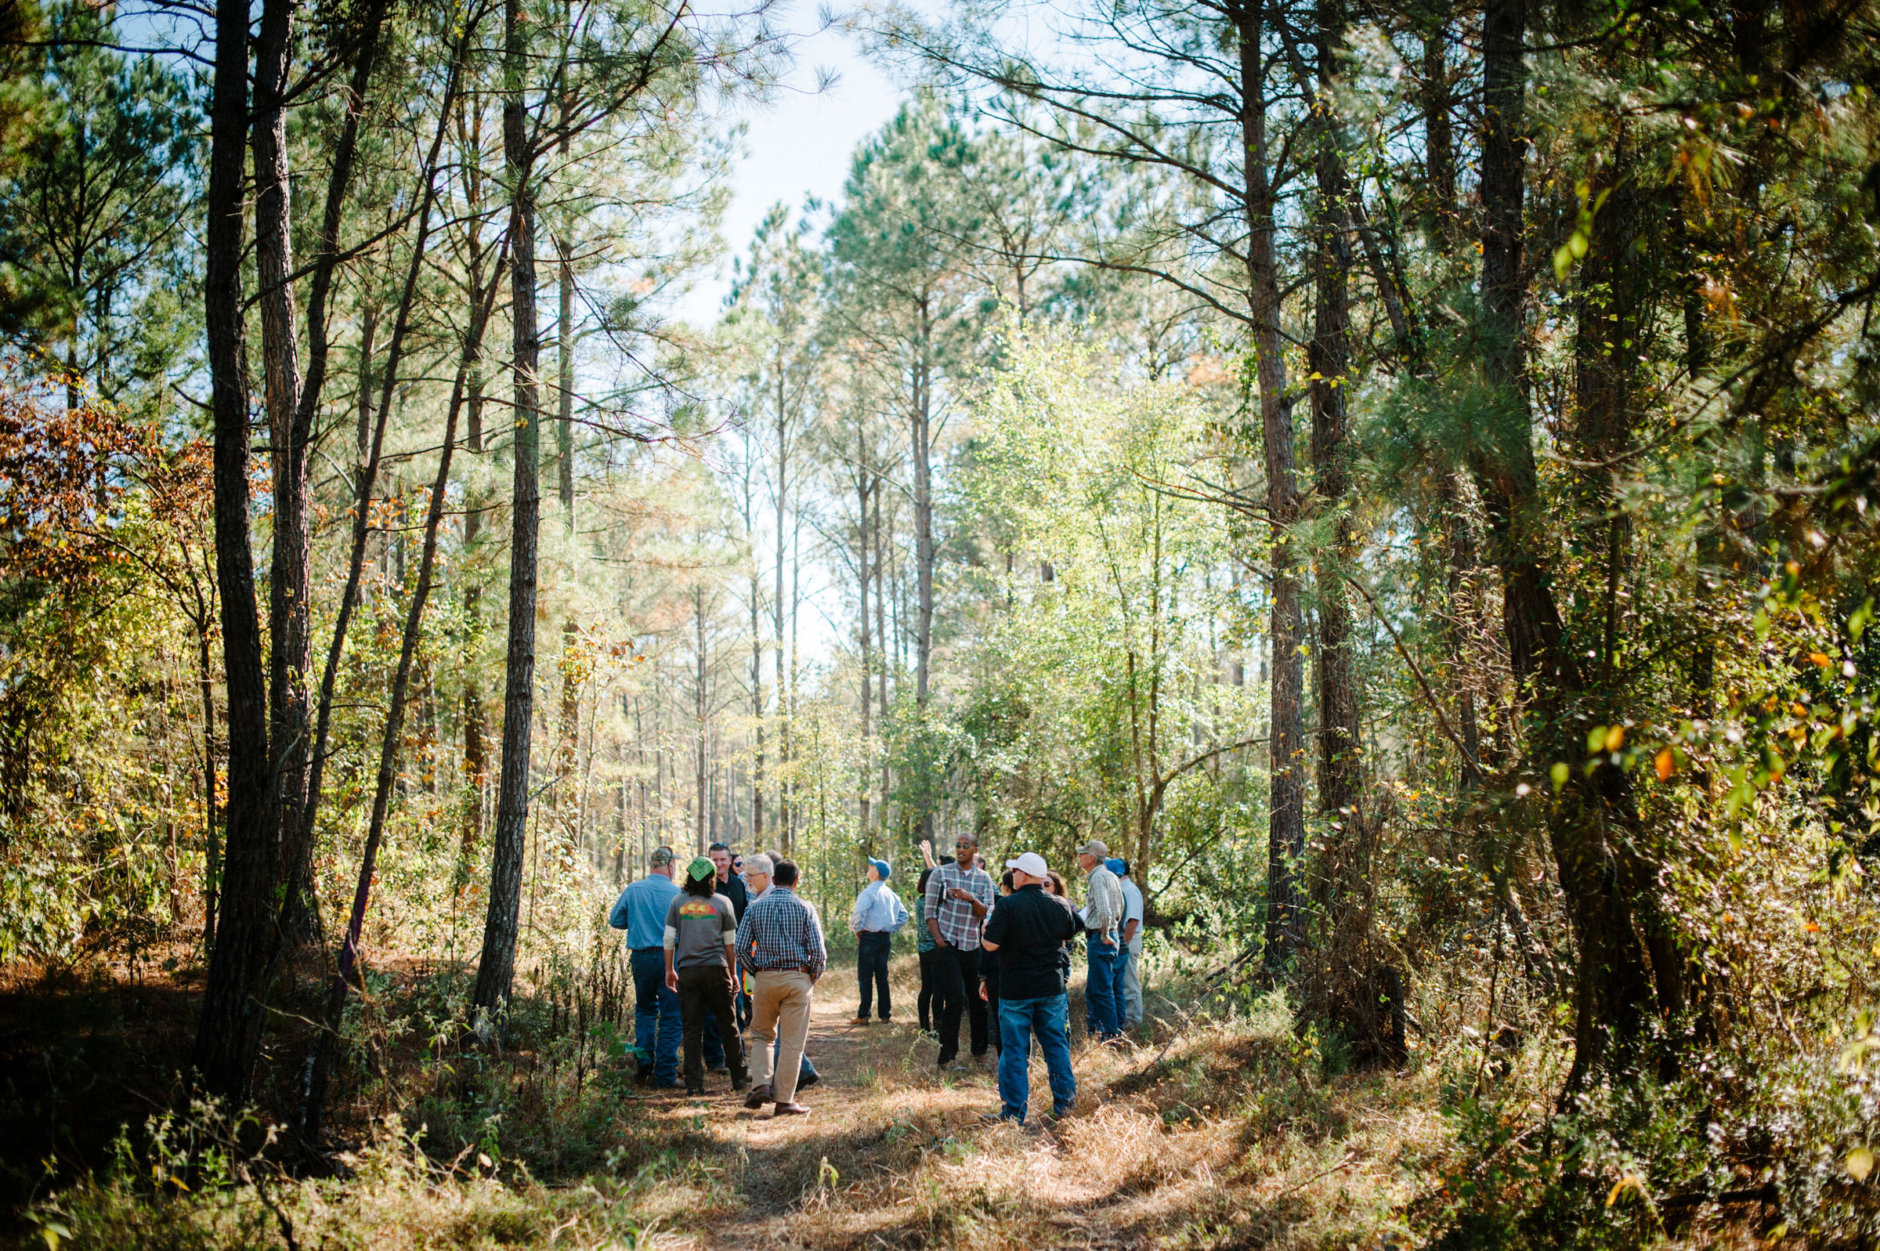 ASHDOWN, AR, United States - OCTOBER 28: FSC Landowner Learning Exchange participants tour the Sikes Farms property near Ashdown, AR, on Thursday, October 28, 2015. Participants in the day's programming were informed about FSC certification through a series of lectures and given tours of properties held by local FSC certified landowners whose timber is sold to Domtar.